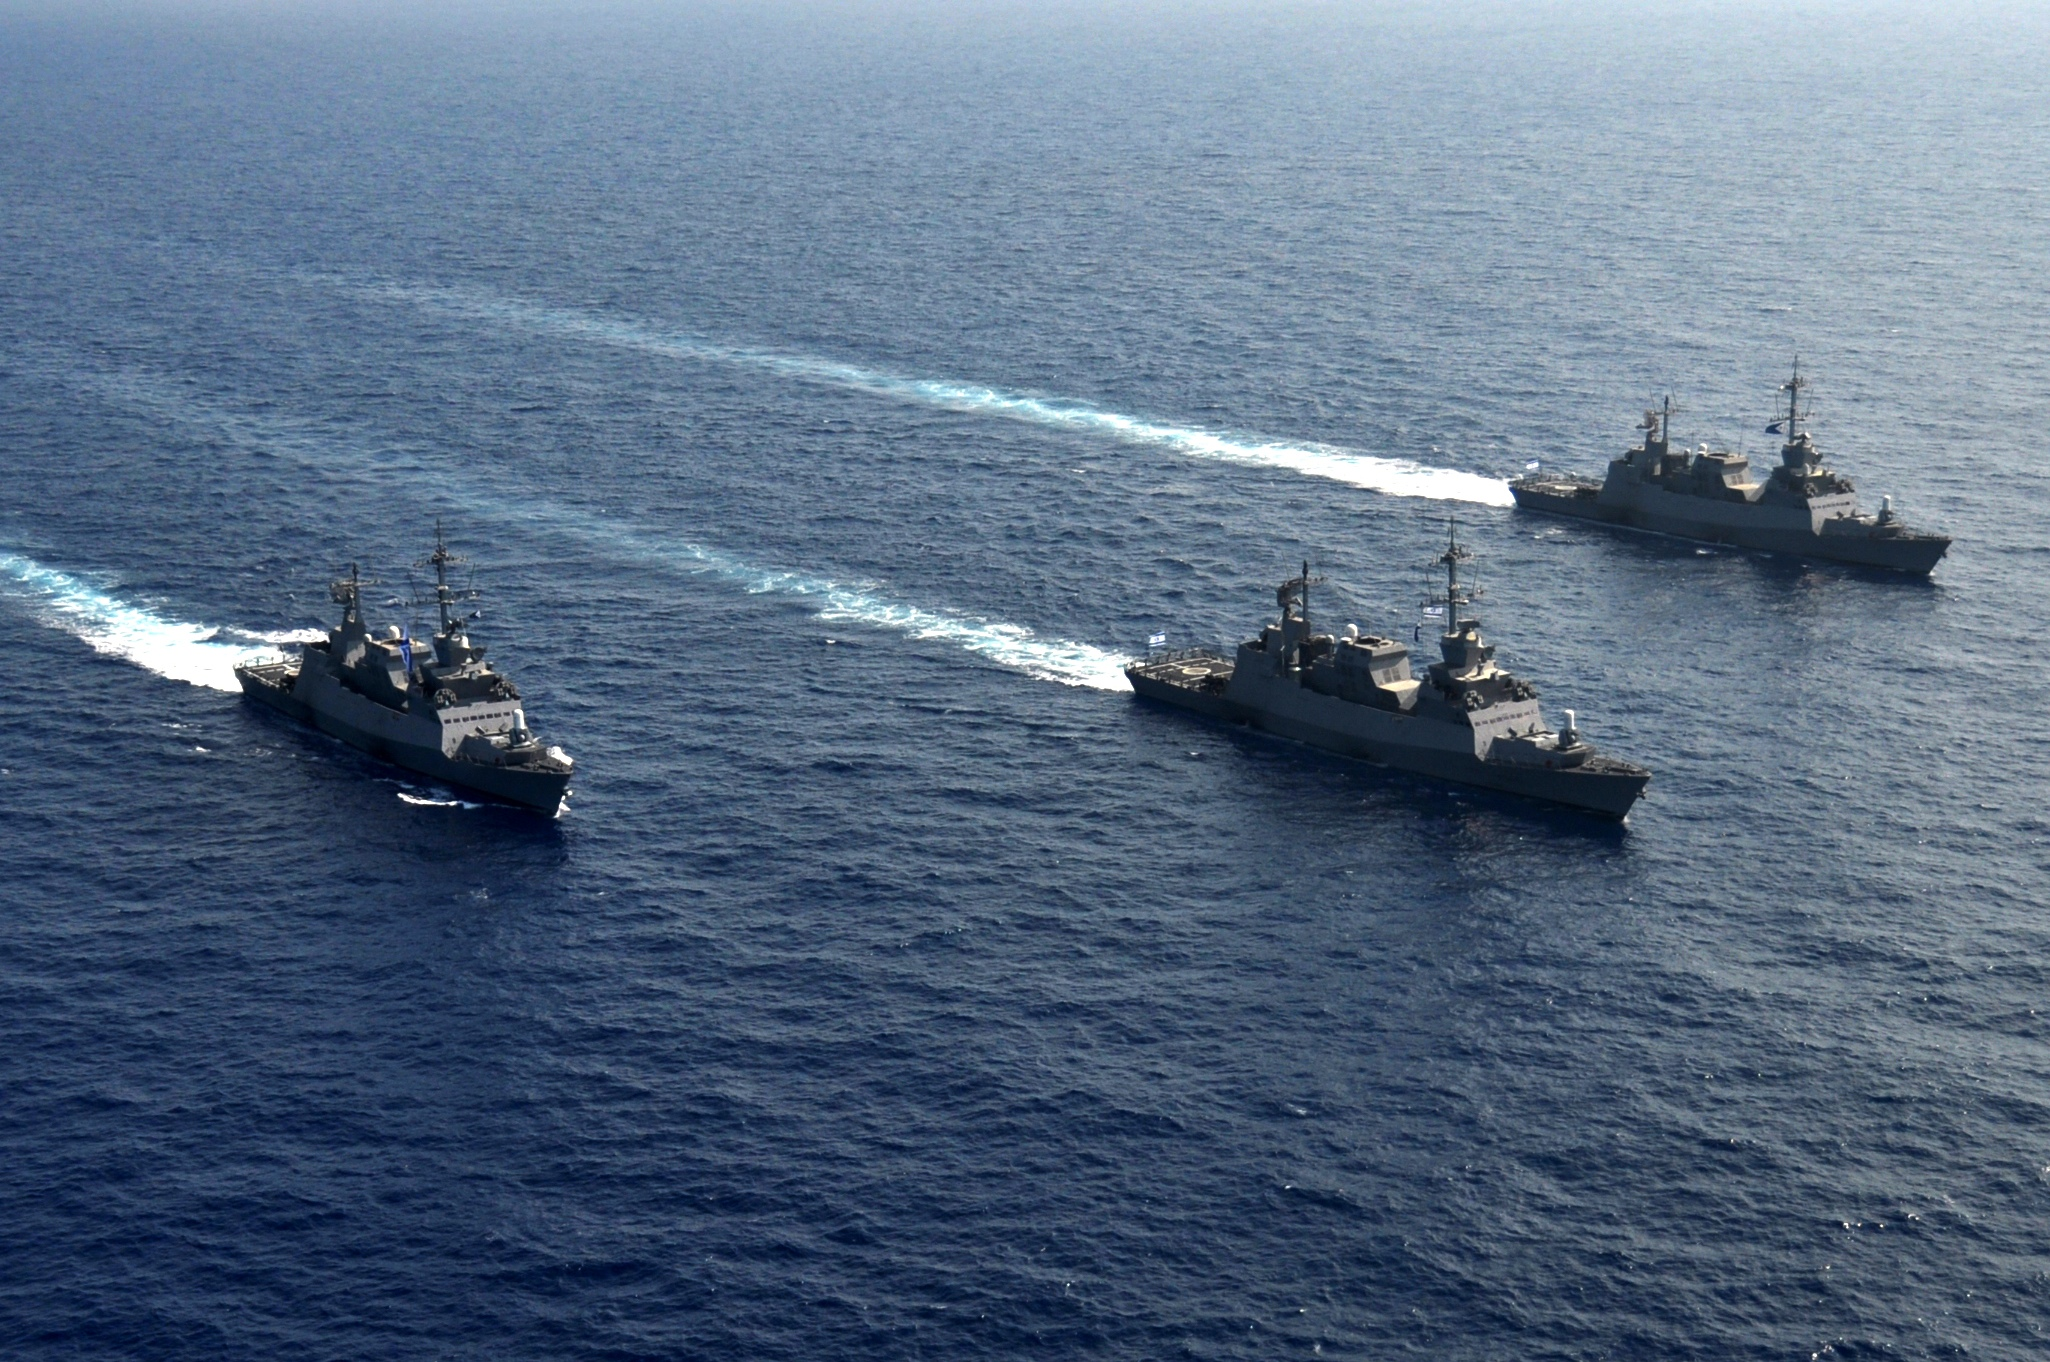 File:Three Sa'ar 5 Class Missile Corvettes Going For a Cruise.jpg - Wikimedia Commons